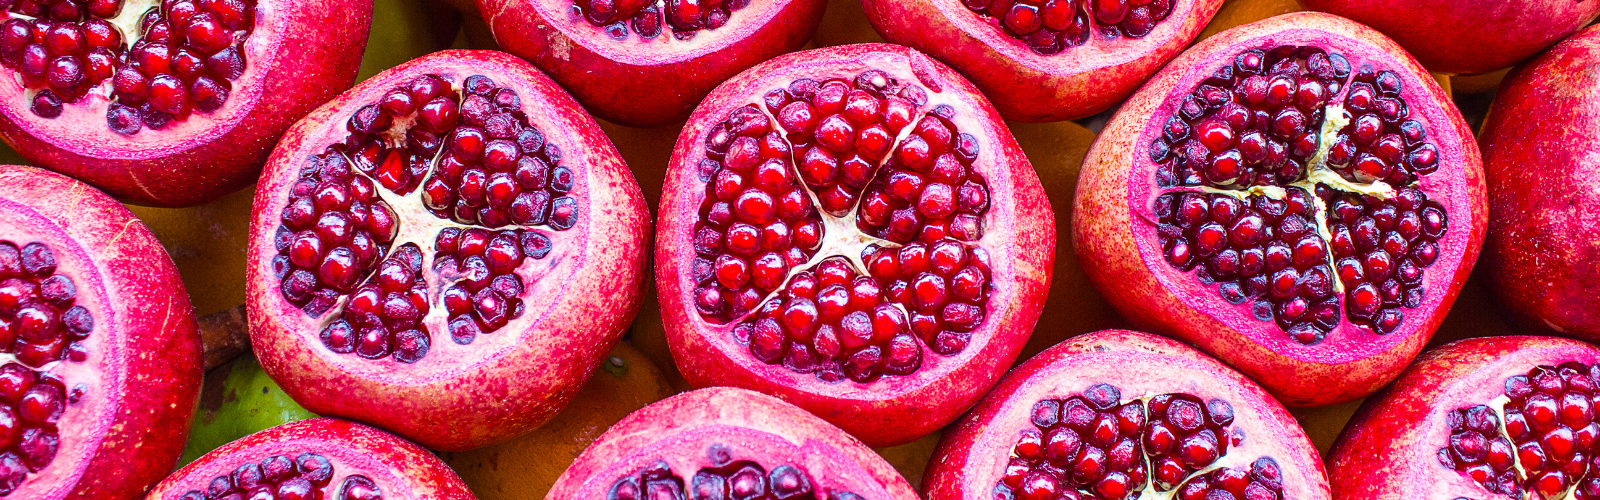 Pomegranates- Fruits to Increase Sperm Count and Motility